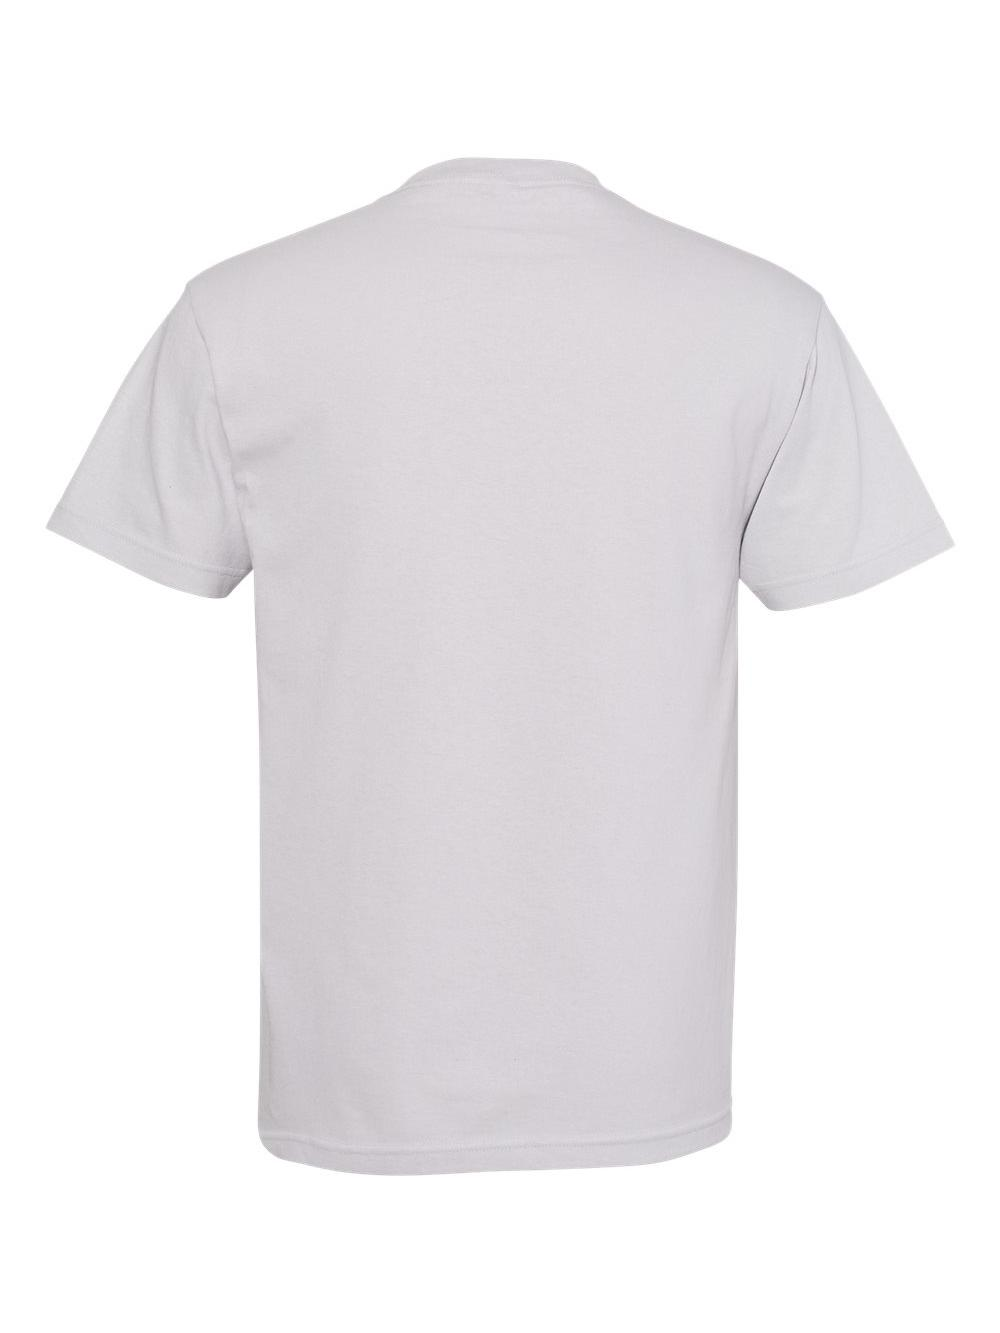 ALSTYLE-Classic-T-Shirt-1301 thumbnail 81